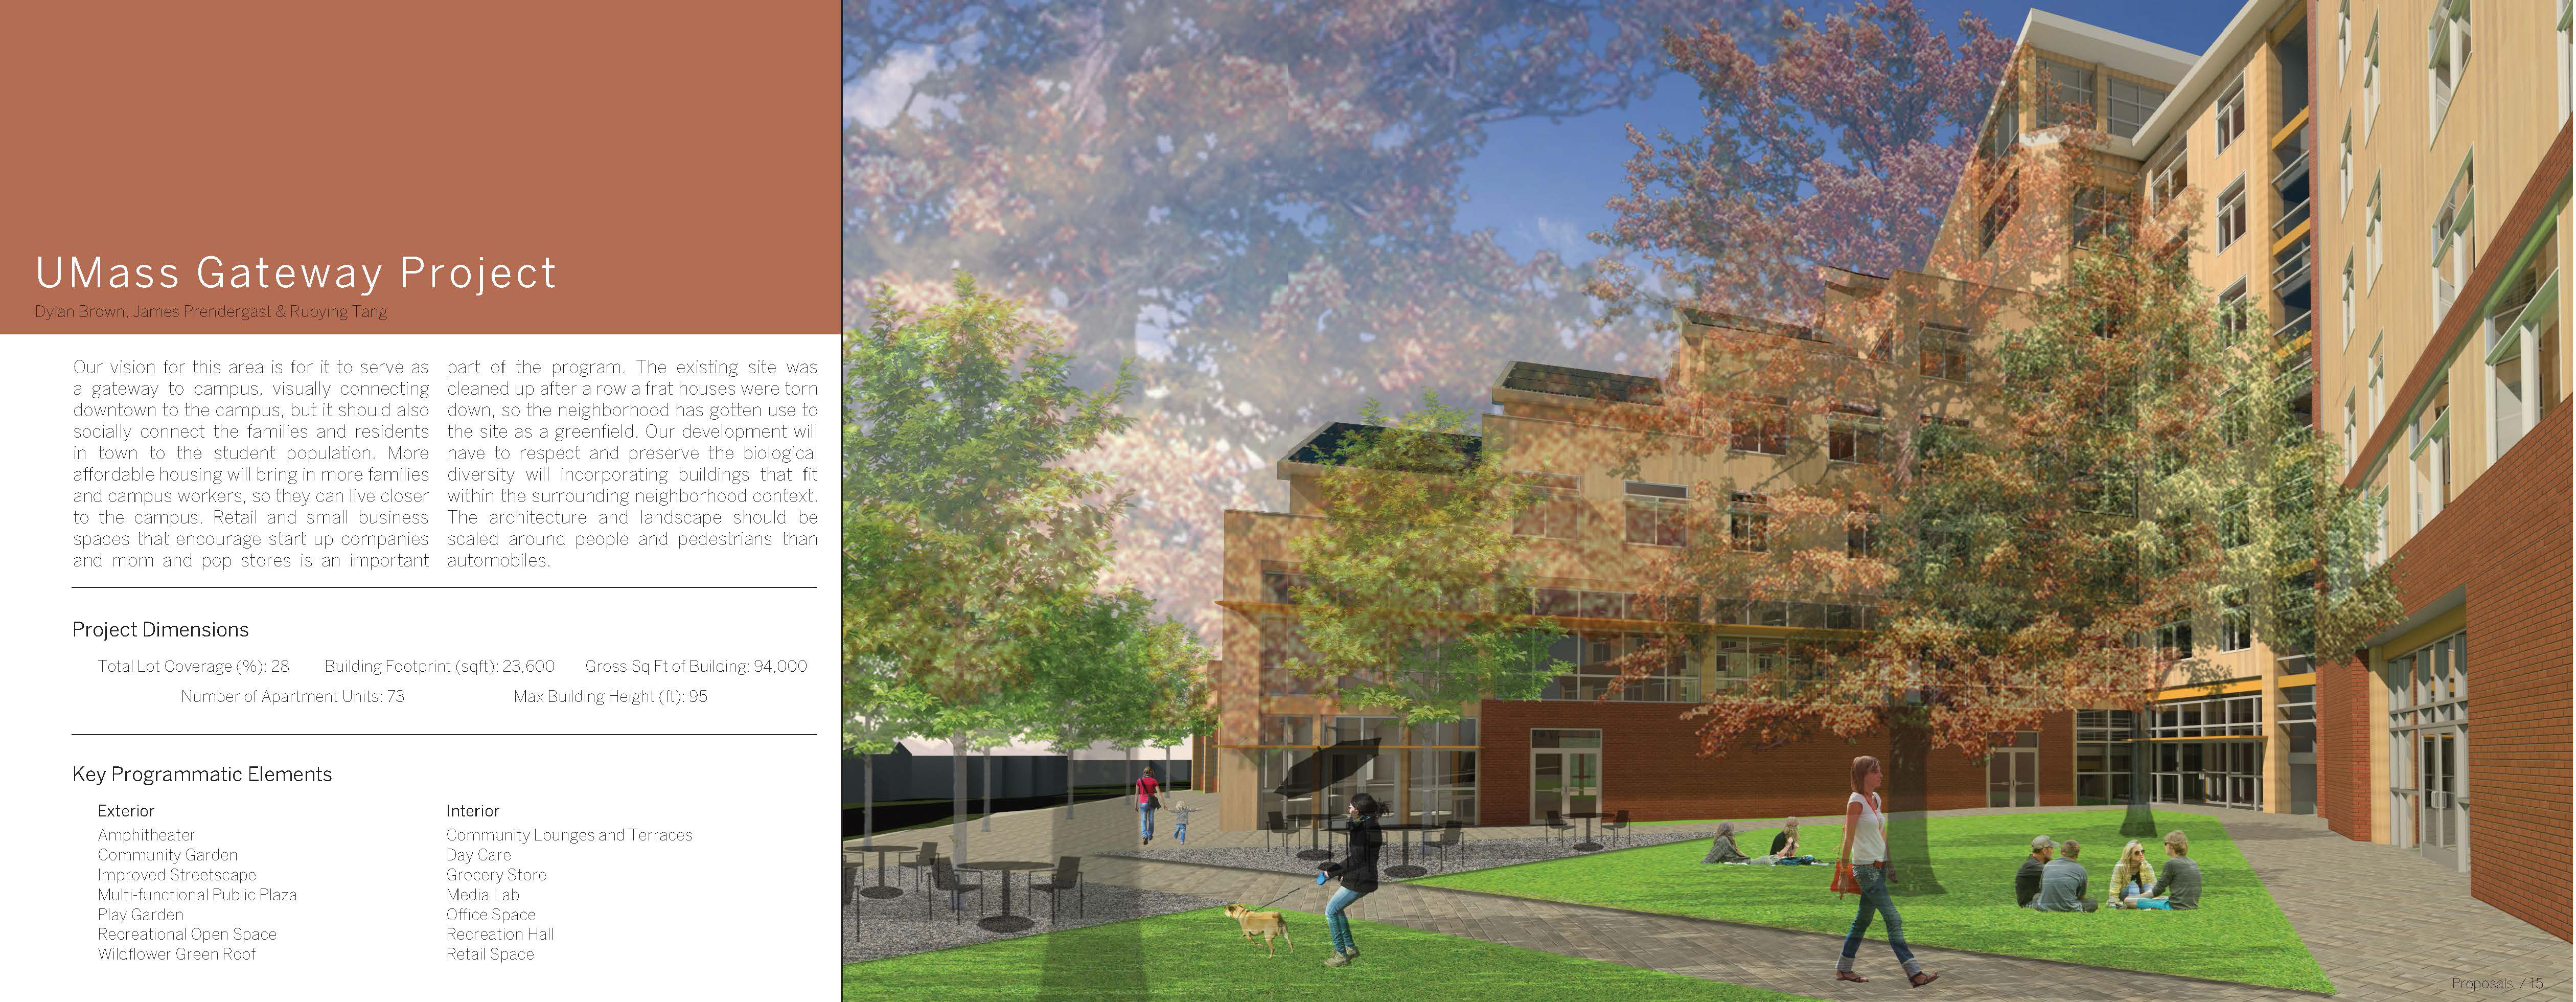 UMass Gateway Project - Dylan Brown, James Prendergast & Ruoying Tang